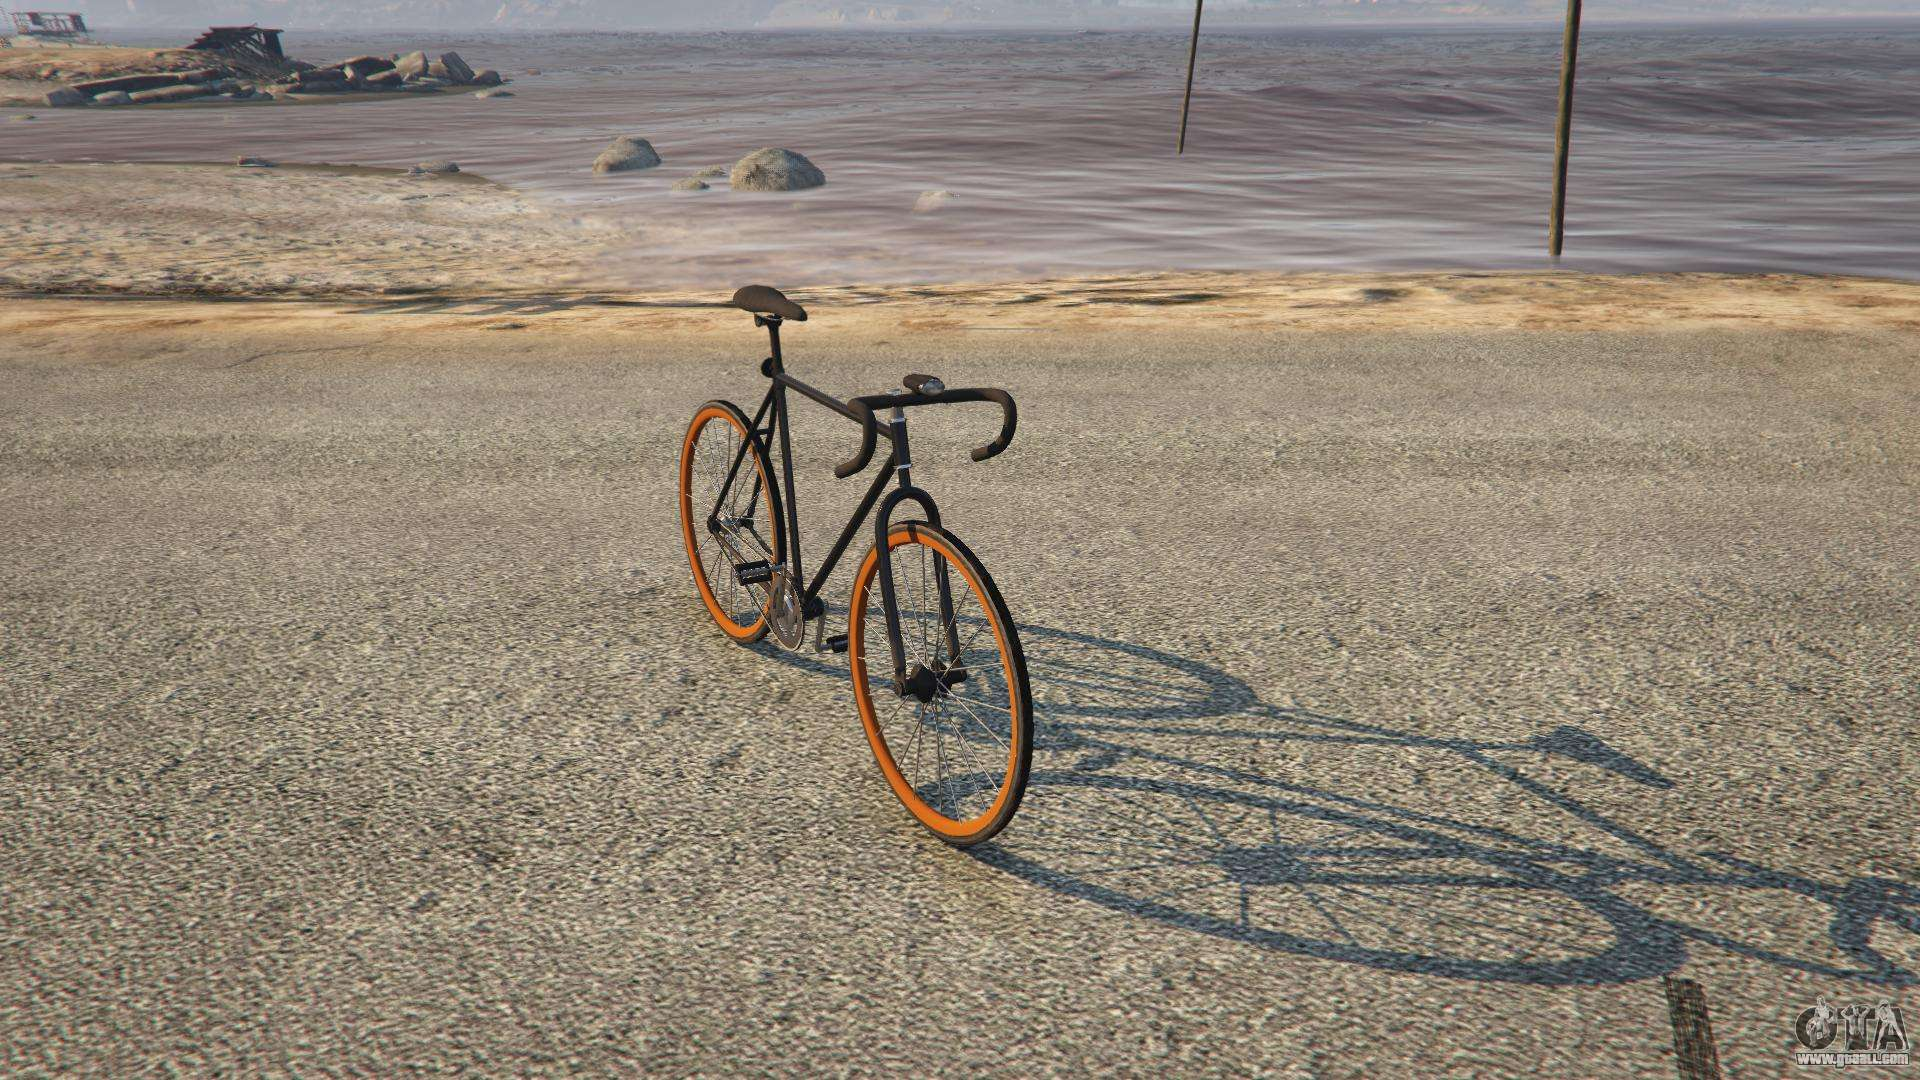 Fixter from GTA 5